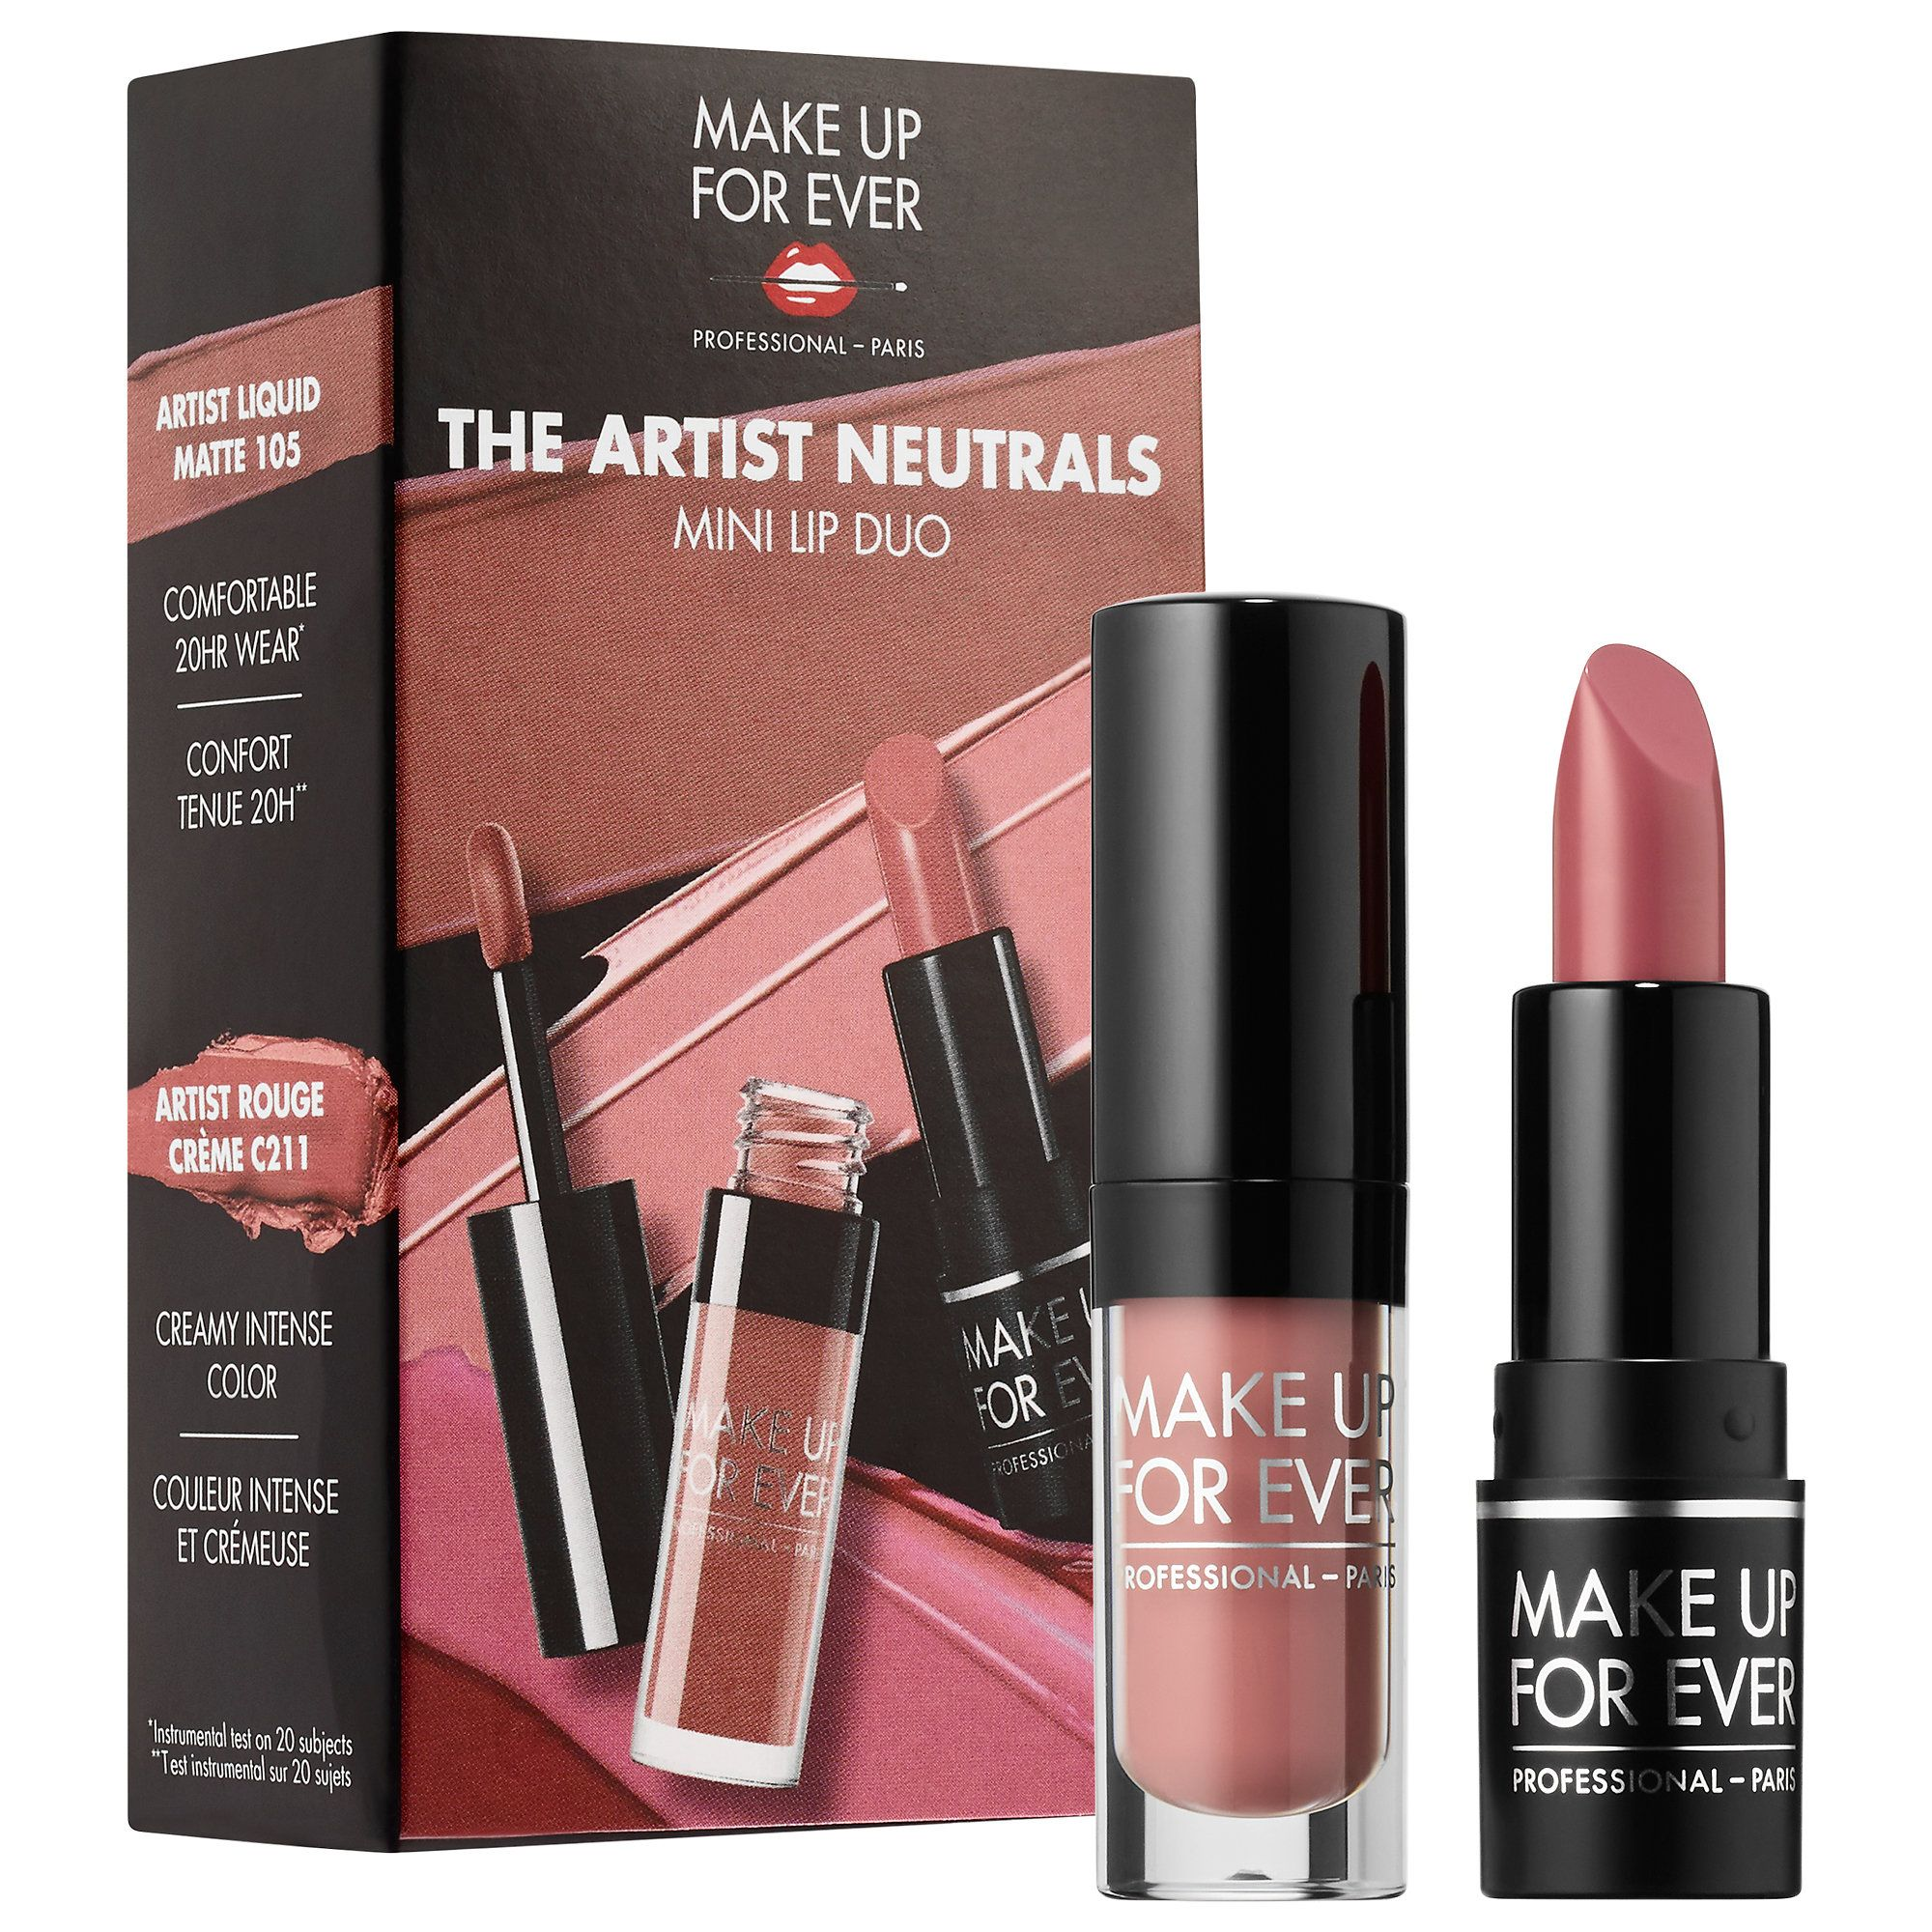 The Artist Neutrals Mini Lip Duo MAKE UP FOR EVER